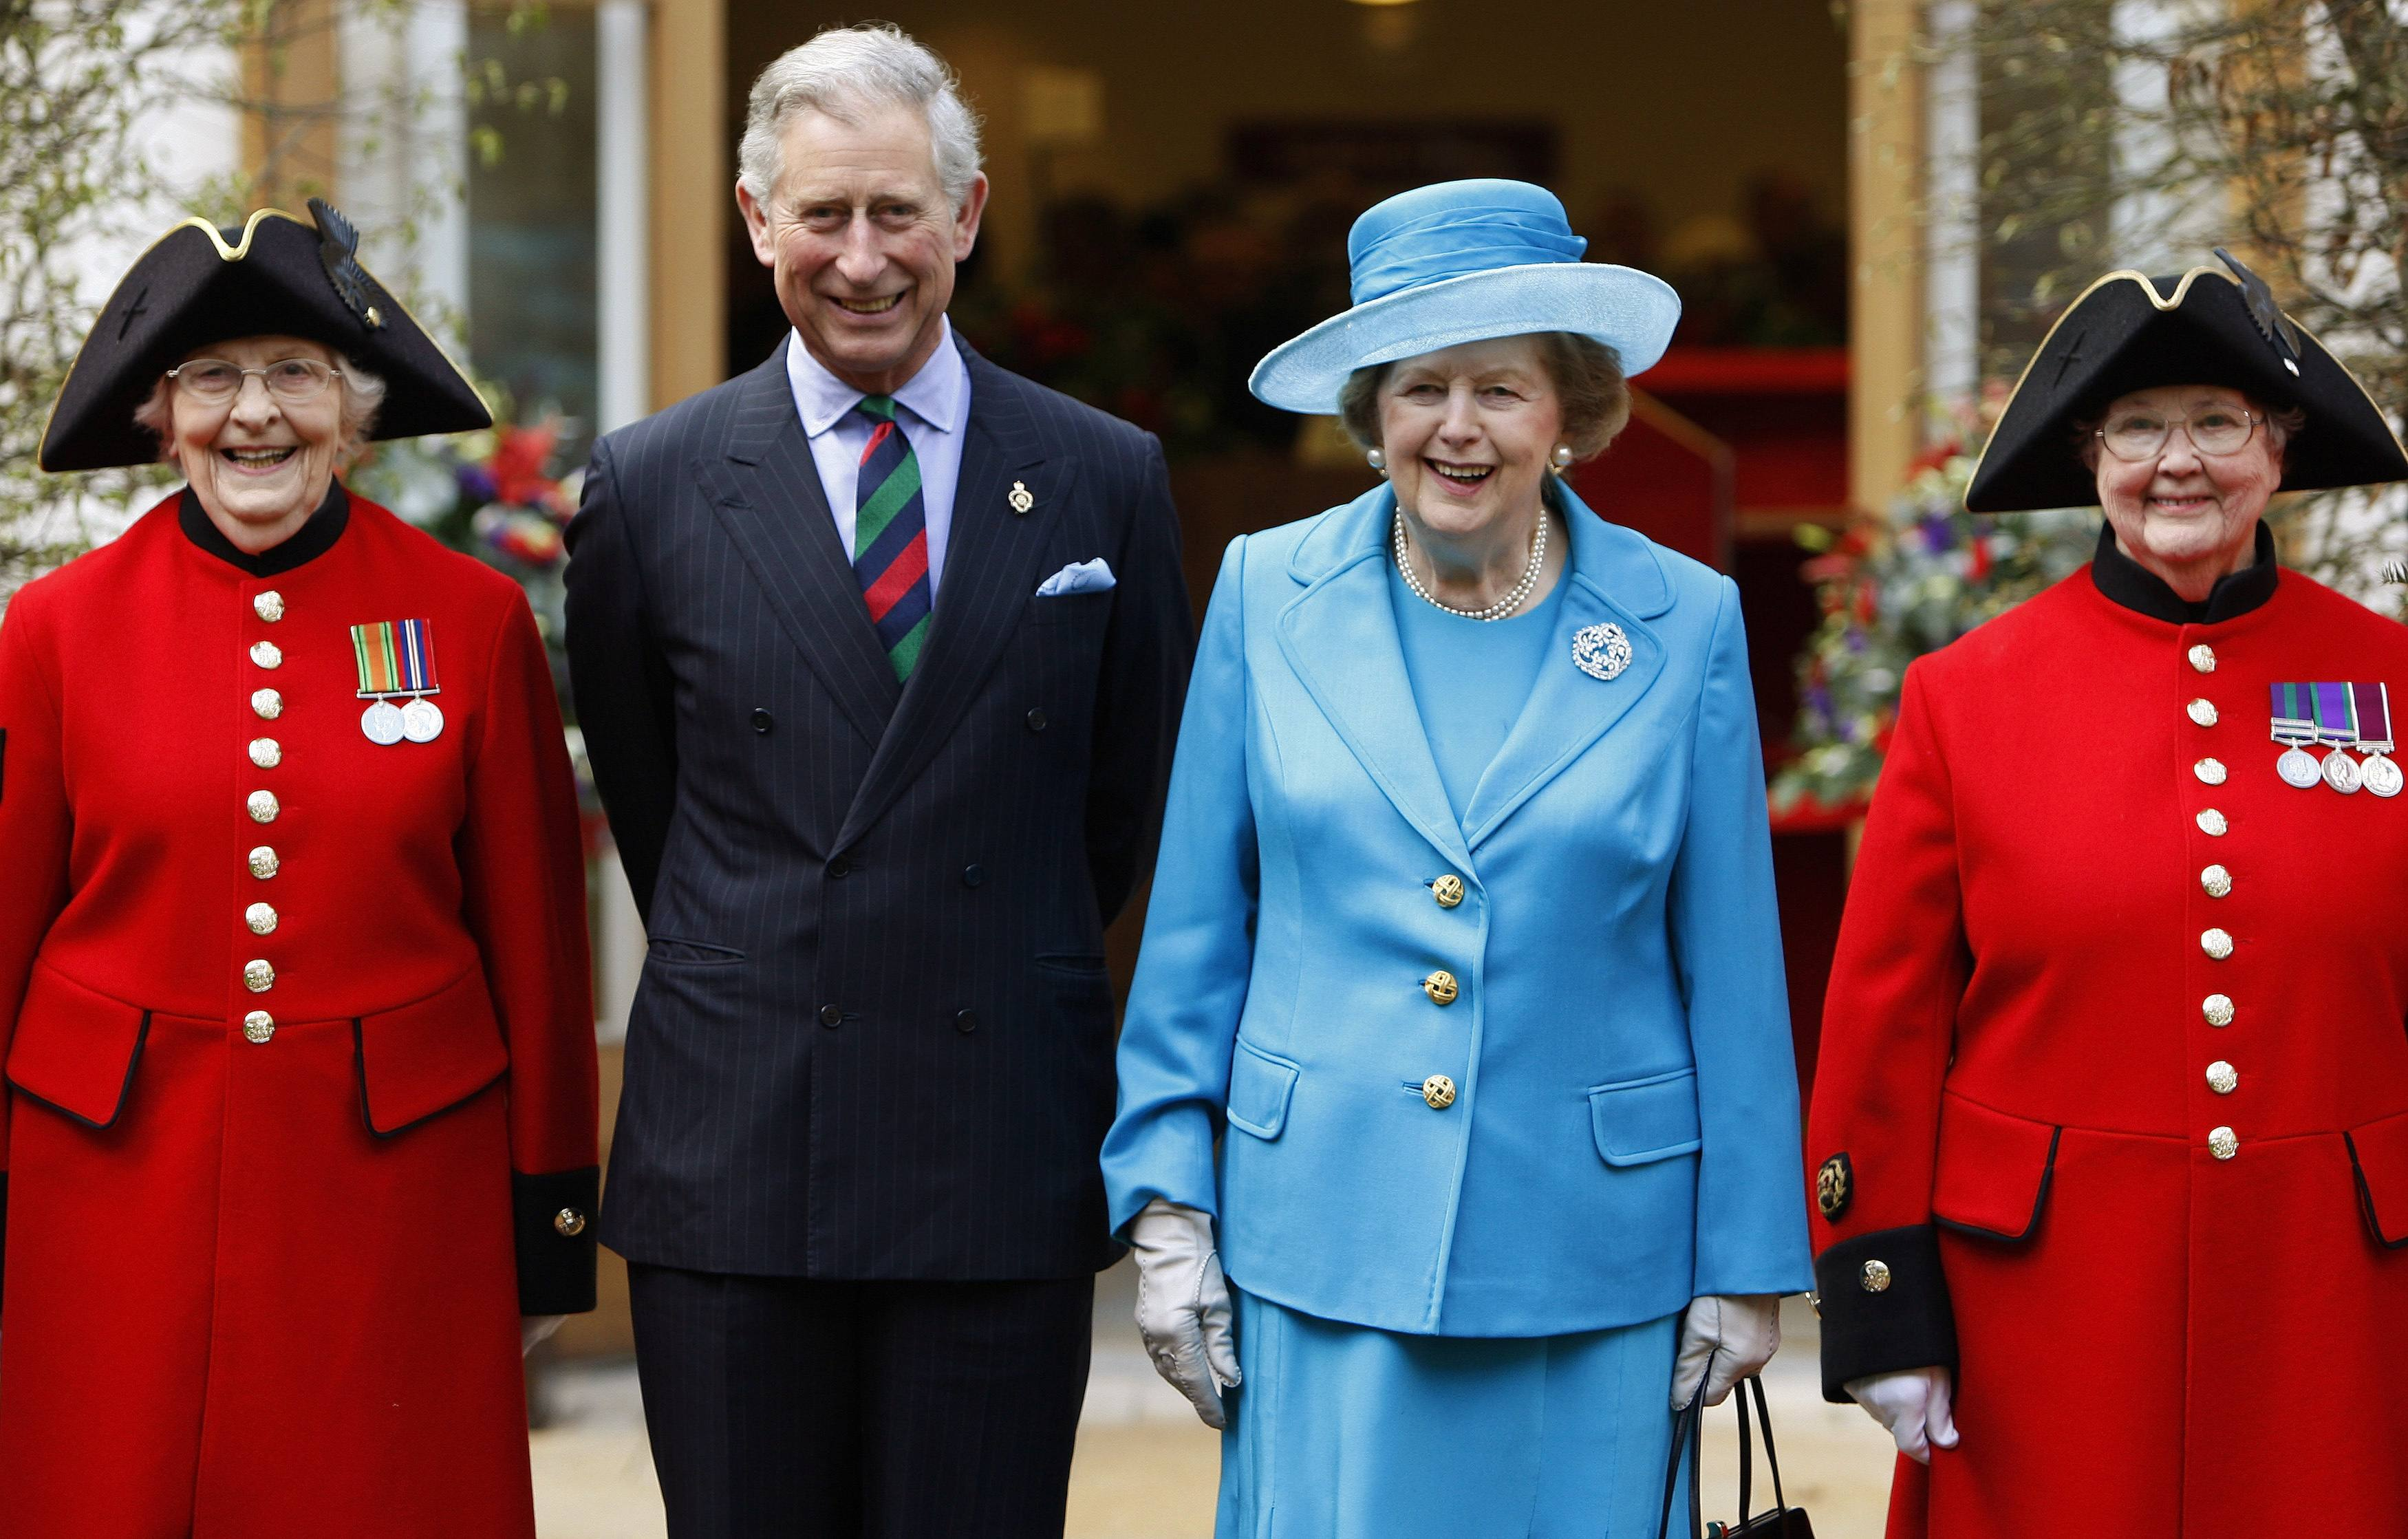 Britain's Prince Charles (2nd L) and former Prime Minister Margaret Thatcher (2nd R) pose with Chelsea pensioners Dorothy Hughes (L) and Winifred Phillips as they attend the opening of a new infirmary at the Royal Hospital Chelsea in London in this March 25, 2009 file photo.